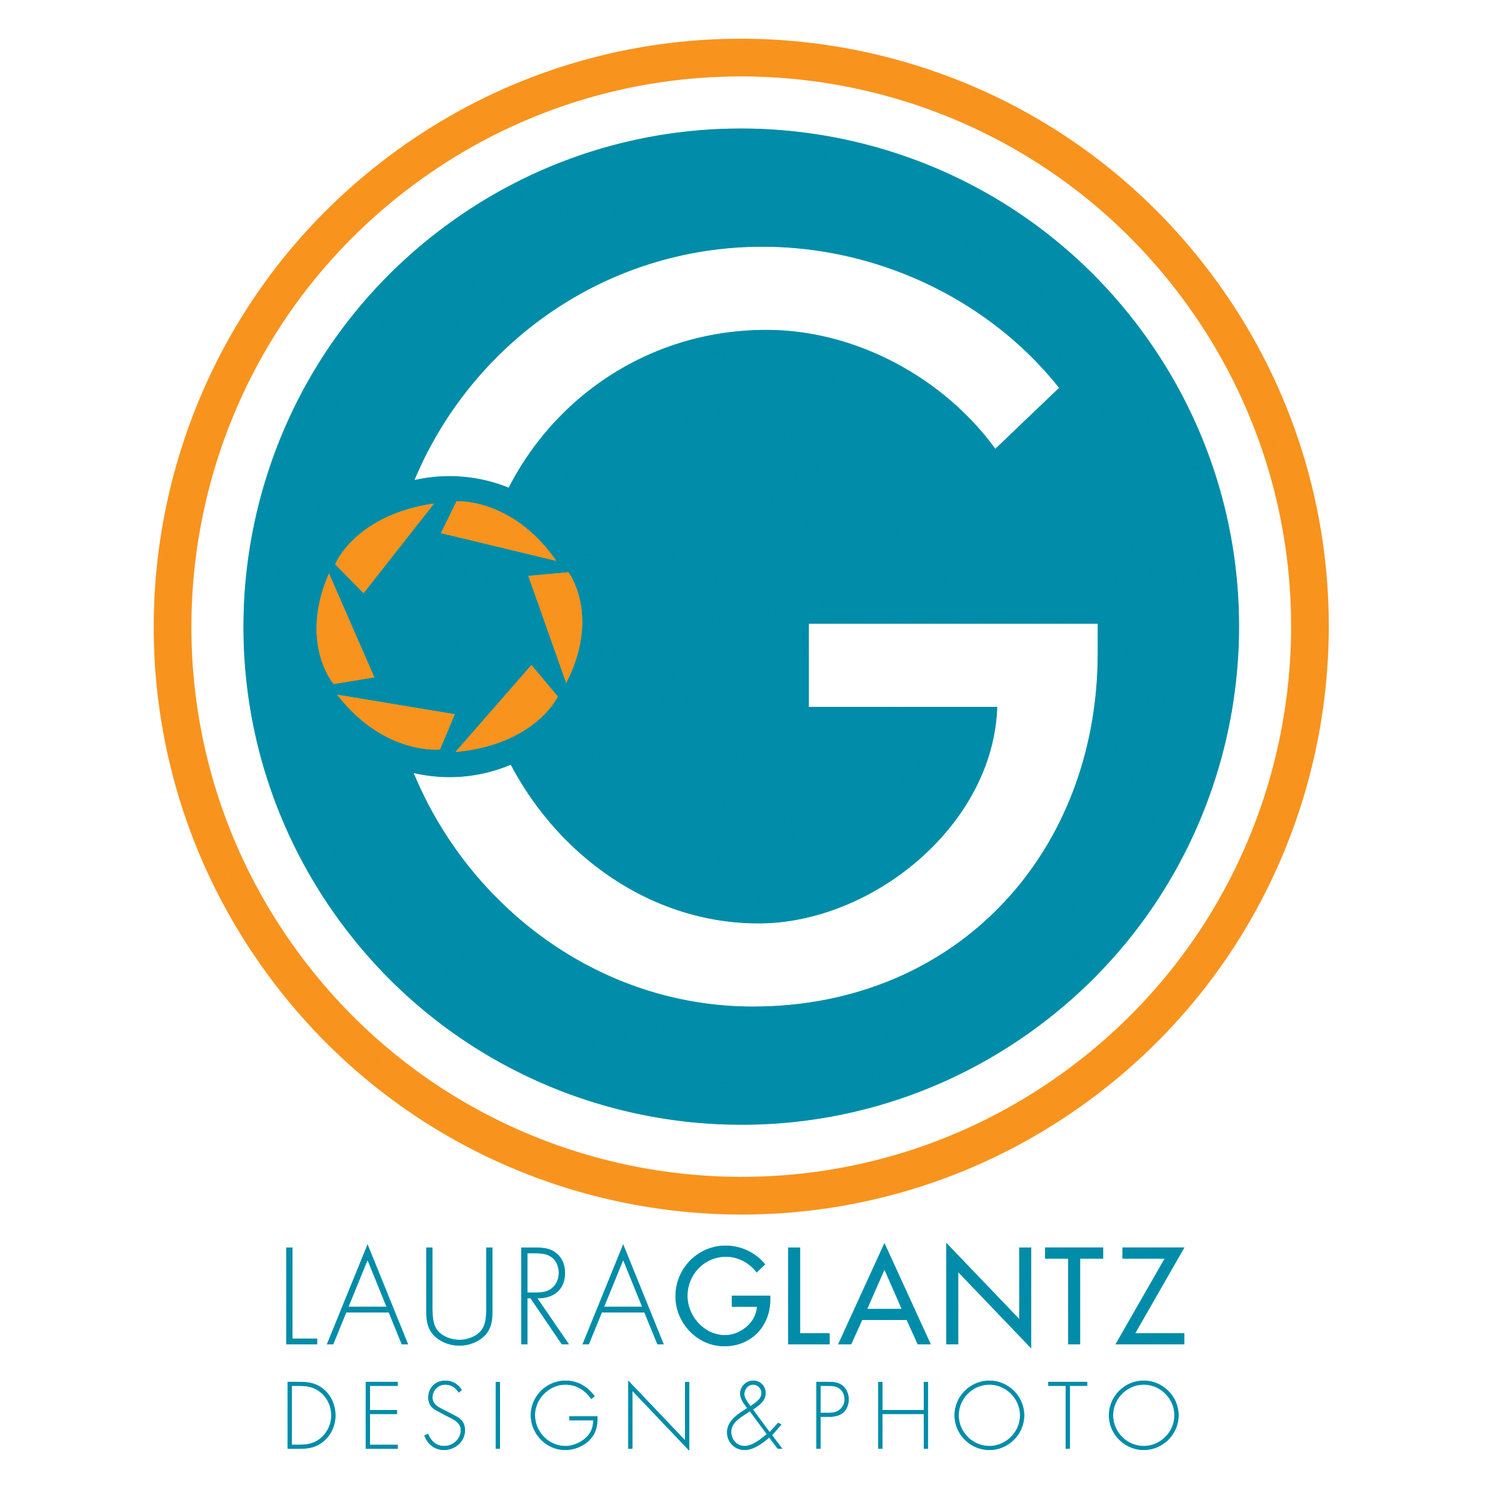 Laura Glantz Design & Photo